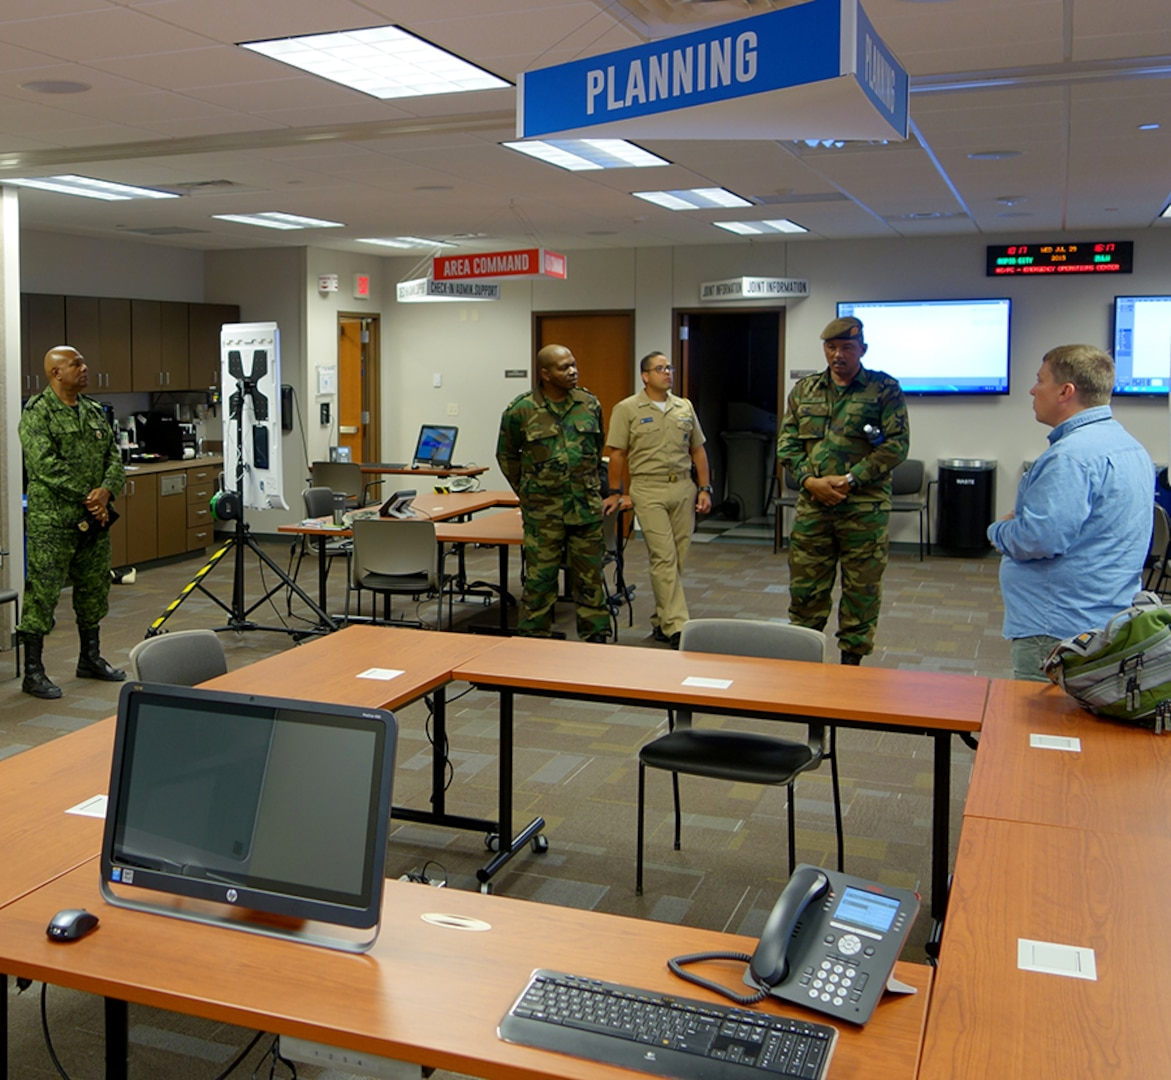 Members of Suriname's Defense discuss emergency operations with an official from the Pennington County emergency management office in Rapid City, S.D., July 28, 2015. The Surinamese service members were in South Dakota on a subject matter expert exchange focusing on emergency operations through the National Guard Bureau's State Partnership Program.